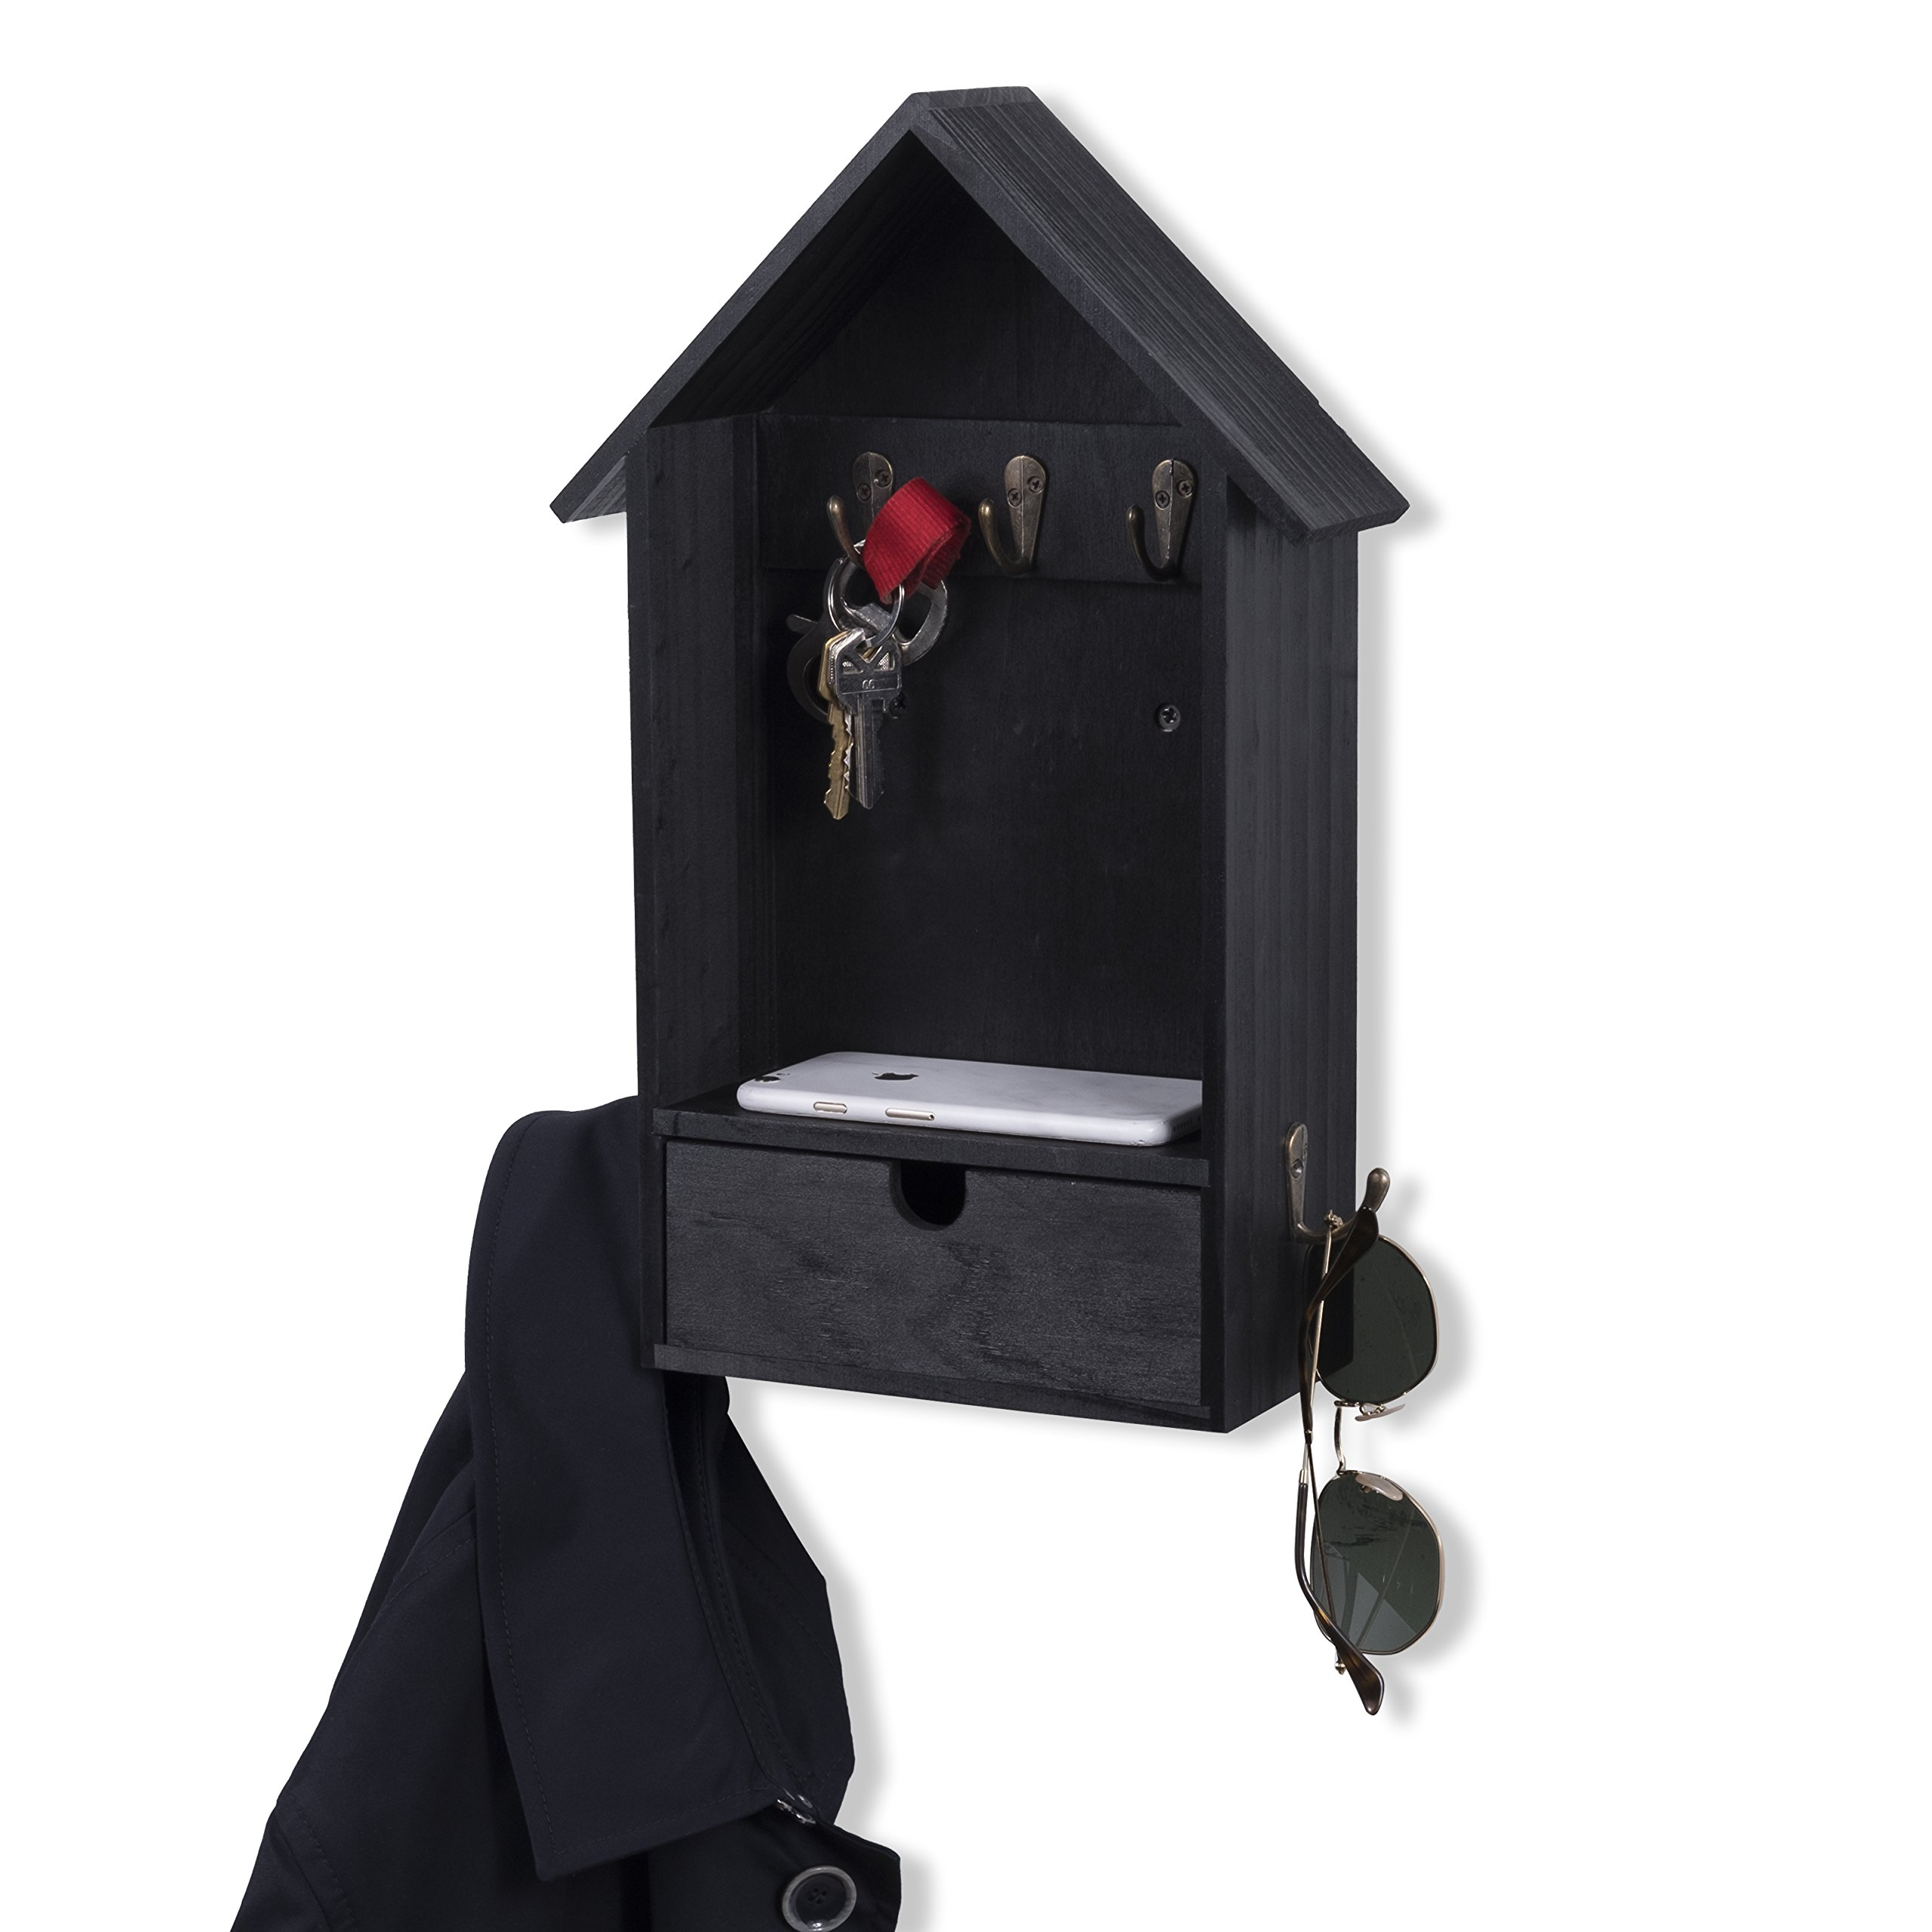 House Shape Unique Design Wall Mount Entryway Organizer Key and Coat Rack (Black) by Brightmaison (Image #2)